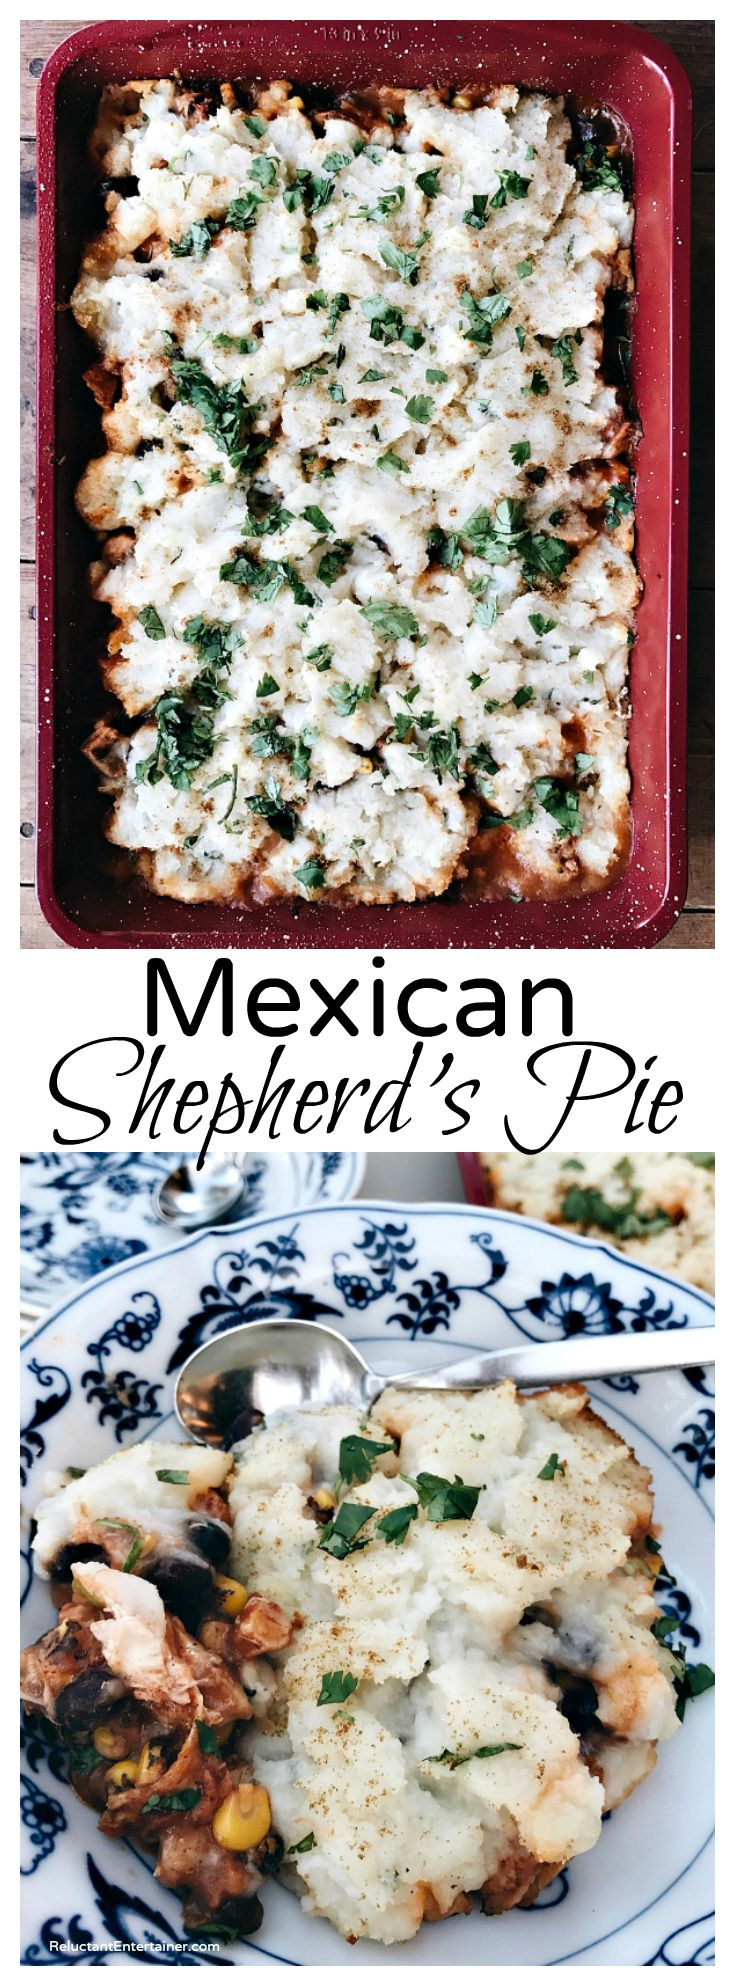 Mexican Shepherd's Pie Recipe made with leftover mashed potatoes at ReluctantEntertainer.com